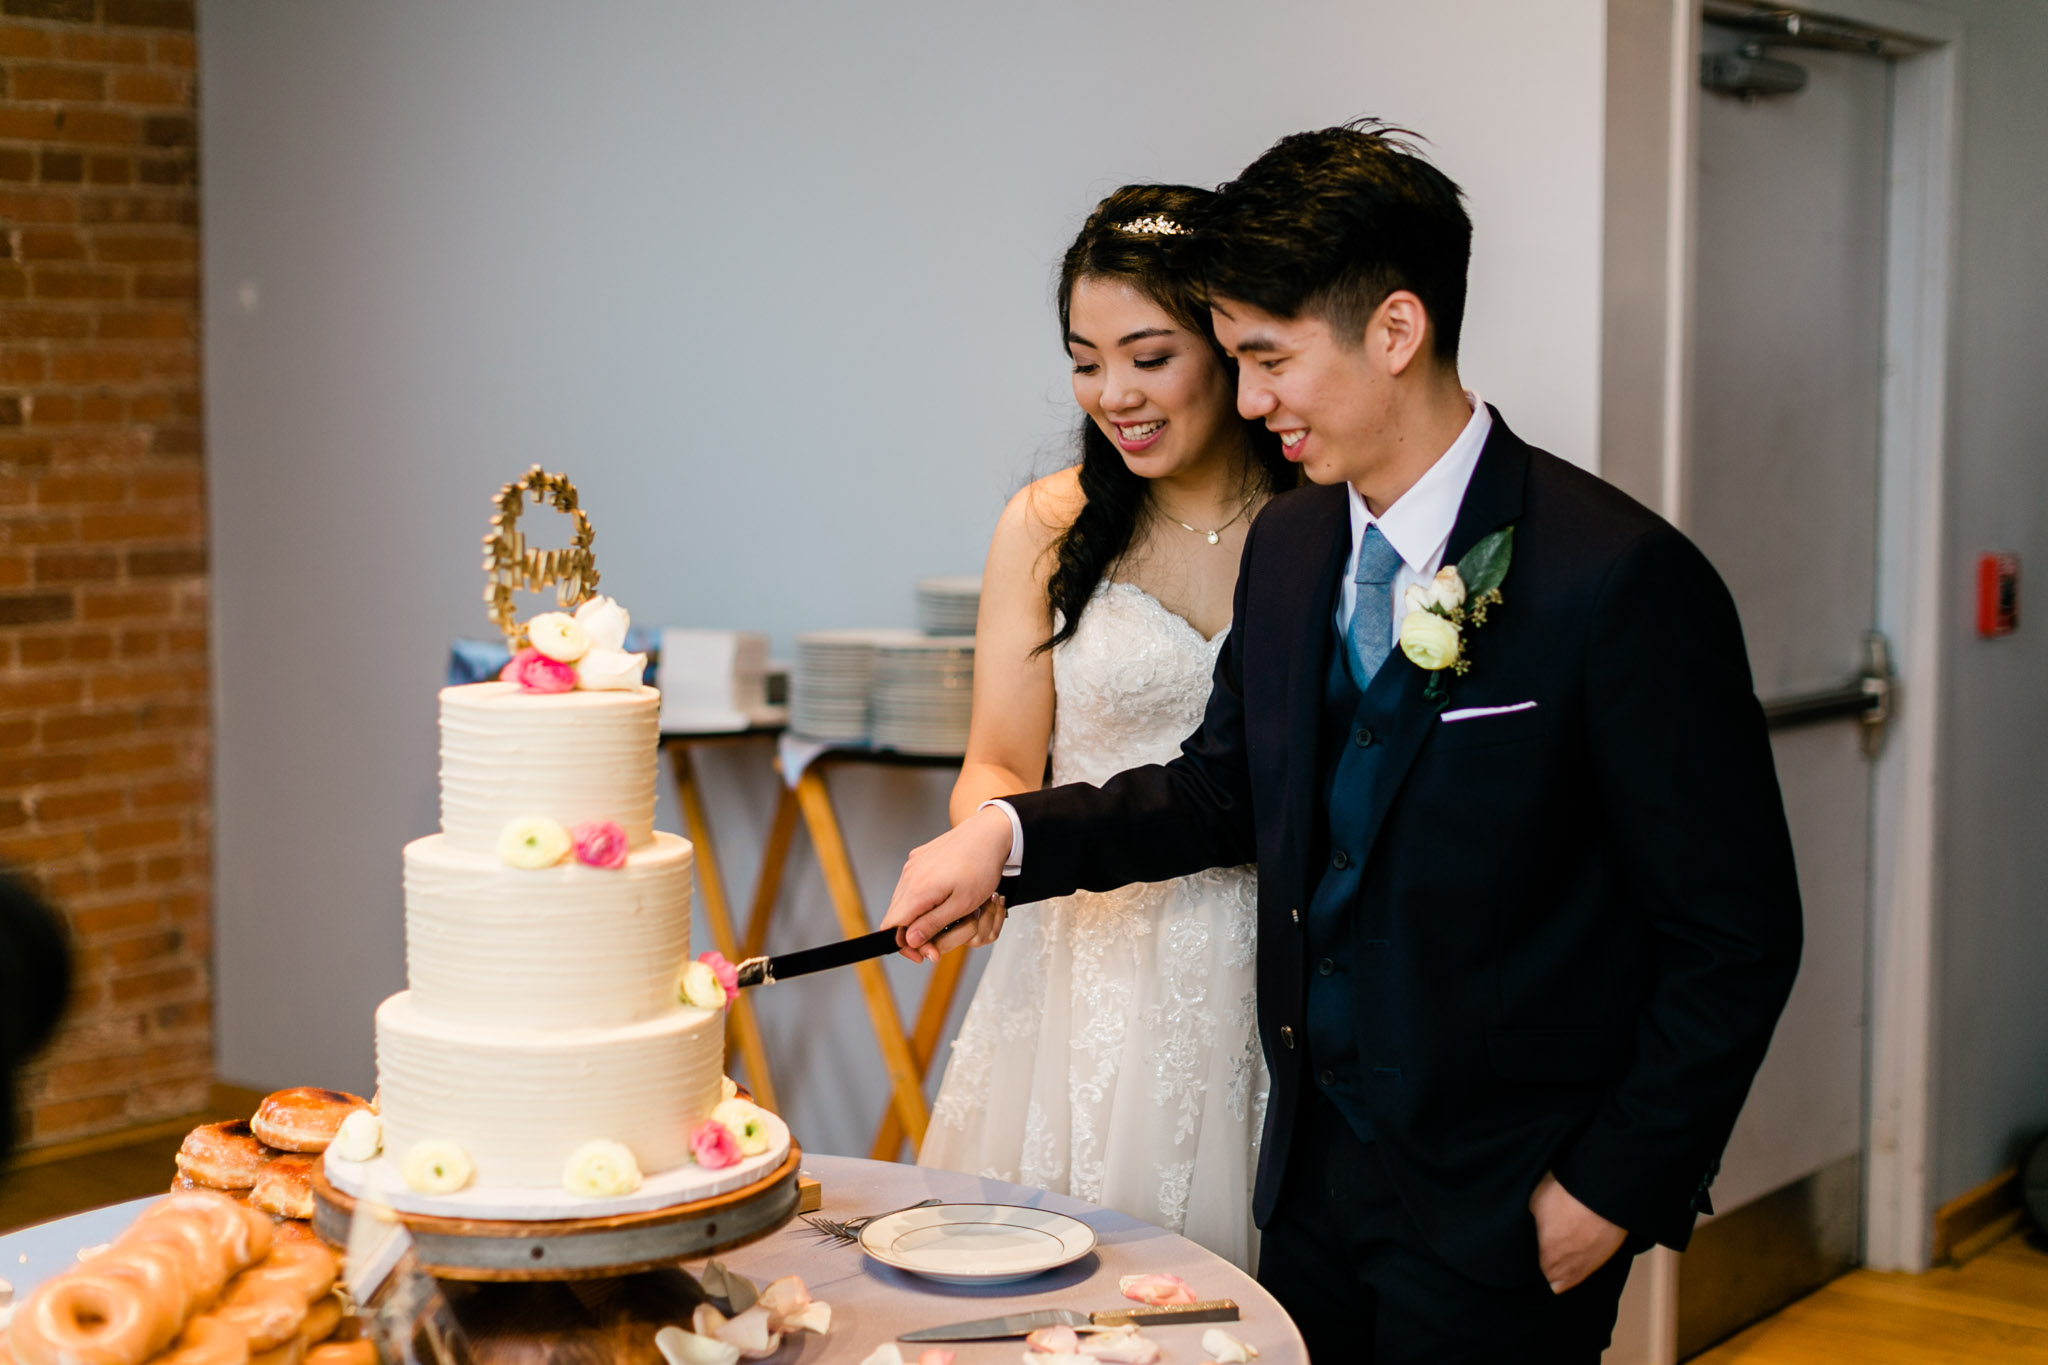 Bride and groom cutting the cake | Durham Wedding Photography | The Cotton Room | By G. Lin Photography